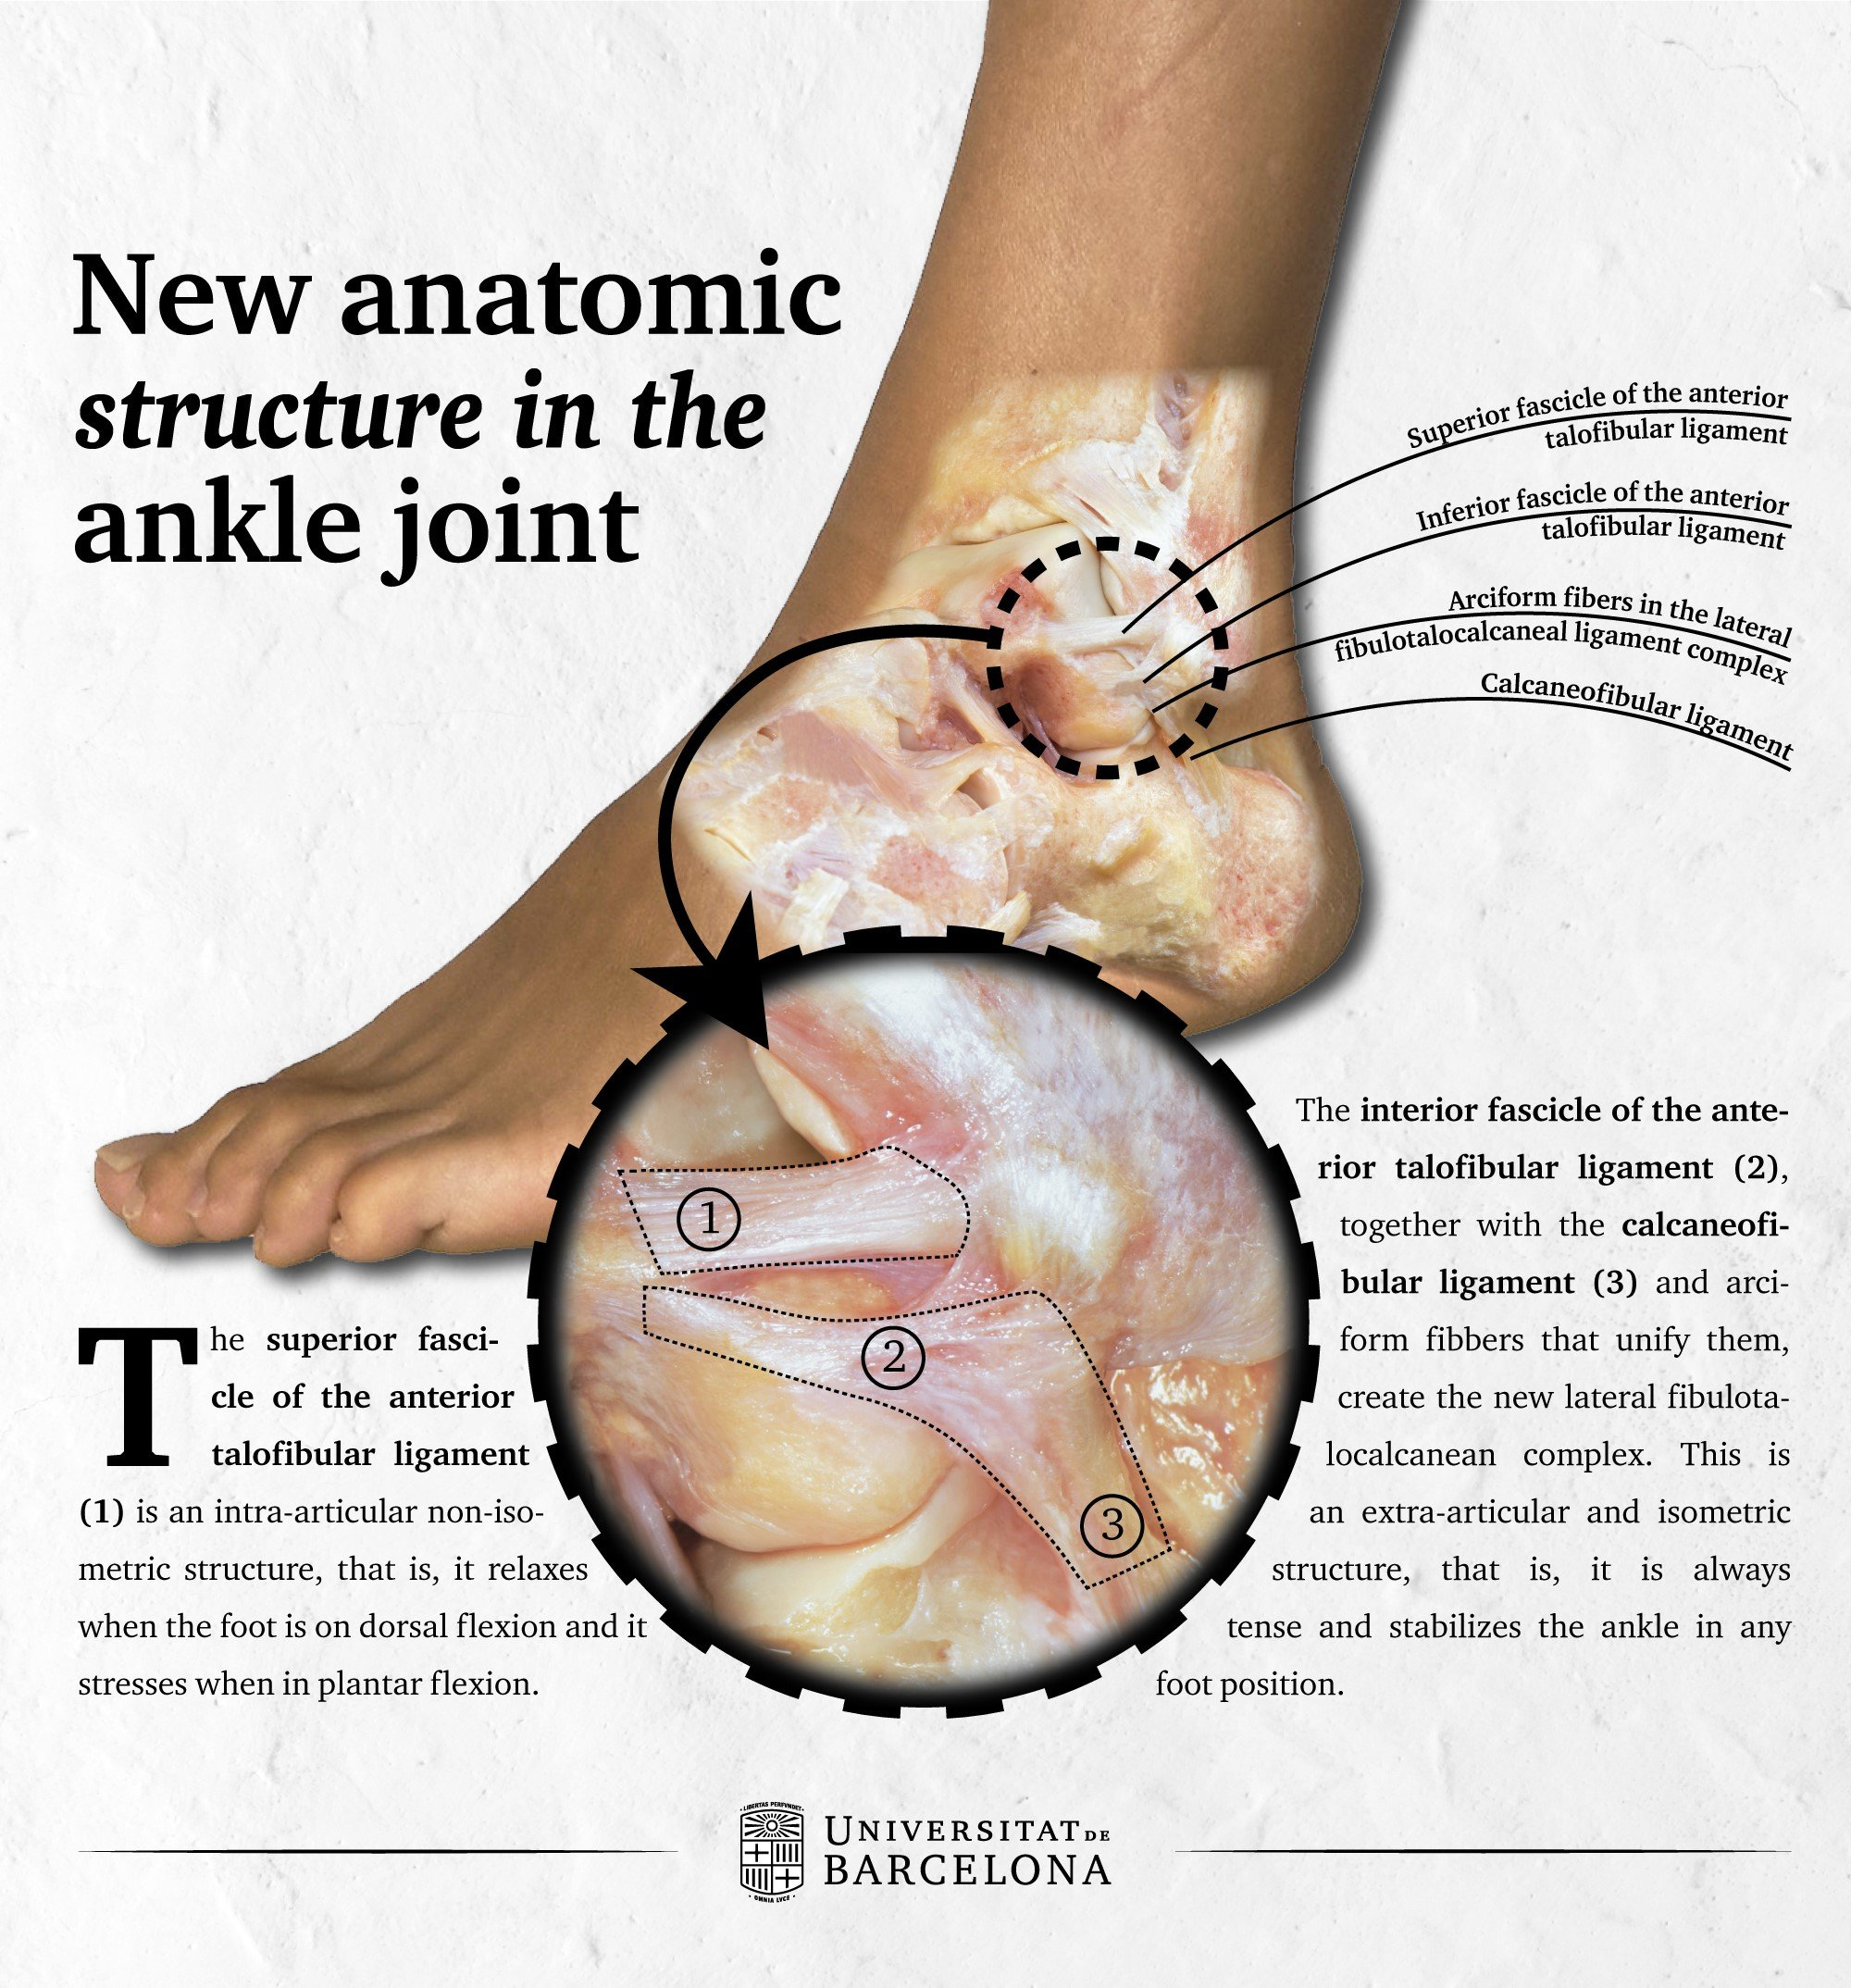 Researchers Describe A New Anatomic Structure In The Ankle